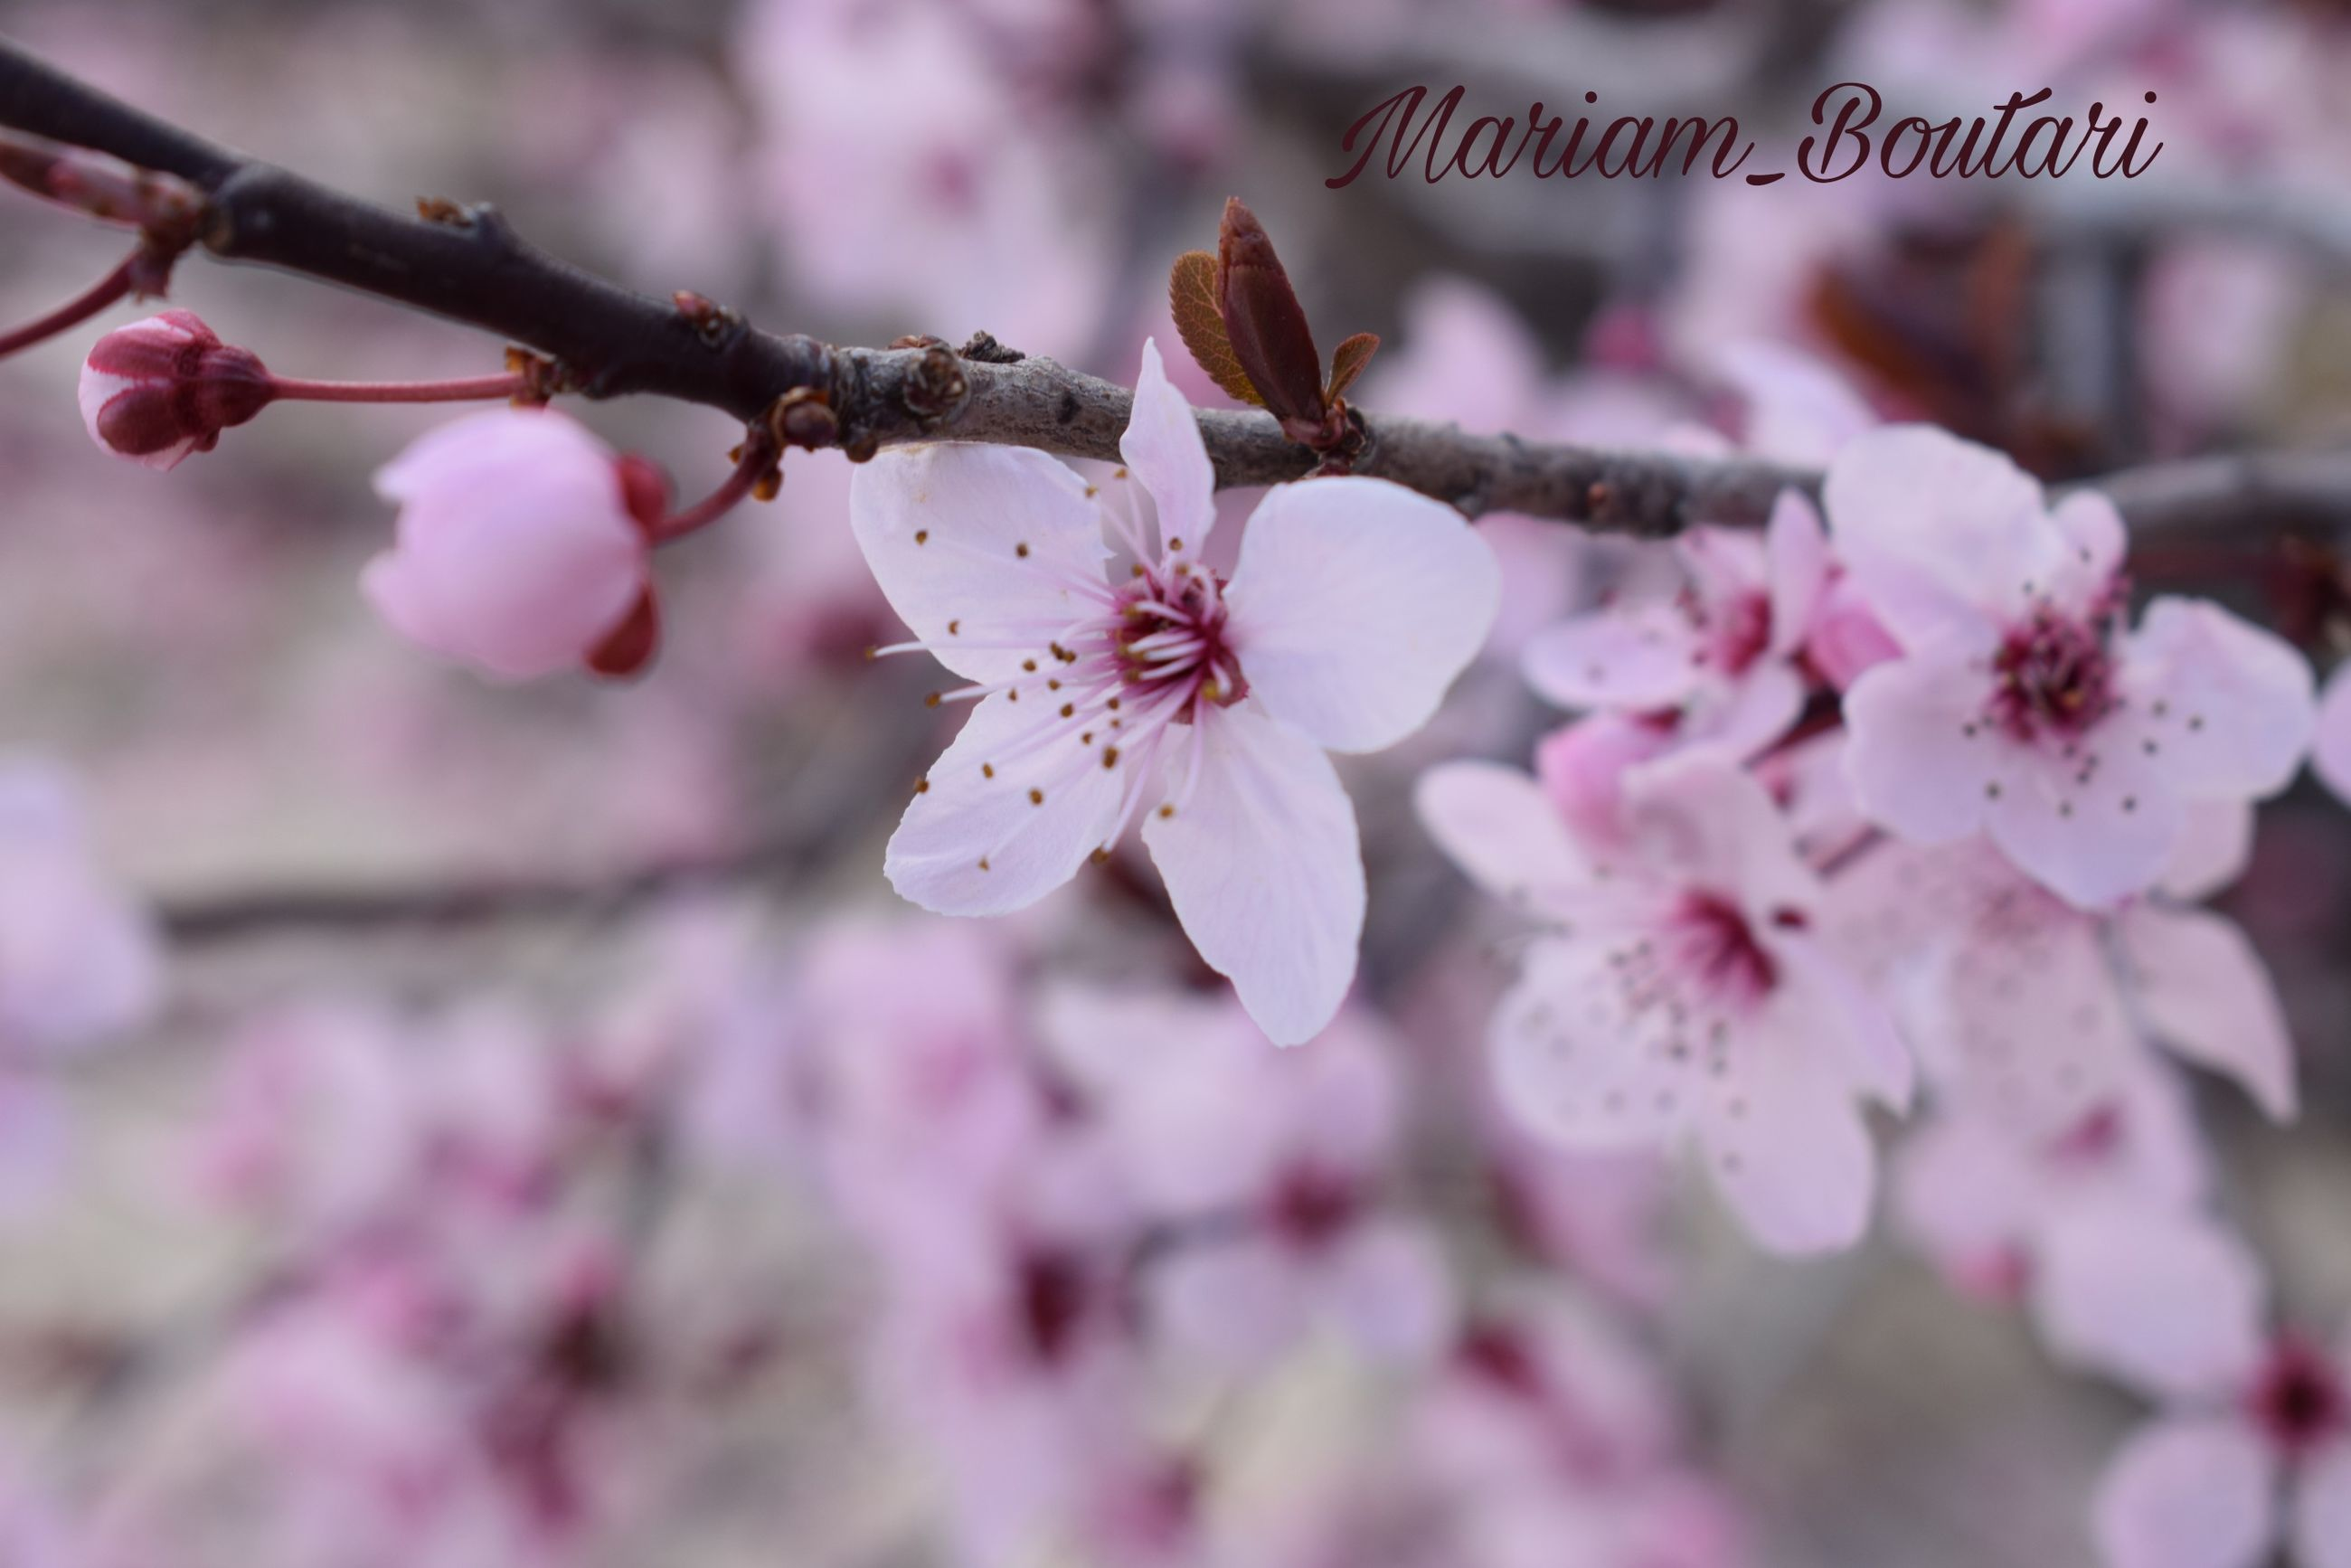 flower, flowering plant, plant, freshness, growth, pink color, fragility, vulnerability, beauty in nature, blossom, close-up, tree, petal, branch, cherry blossom, springtime, nature, flower head, day, inflorescence, pollen, no people, outdoors, cherry tree, plum blossom, spring